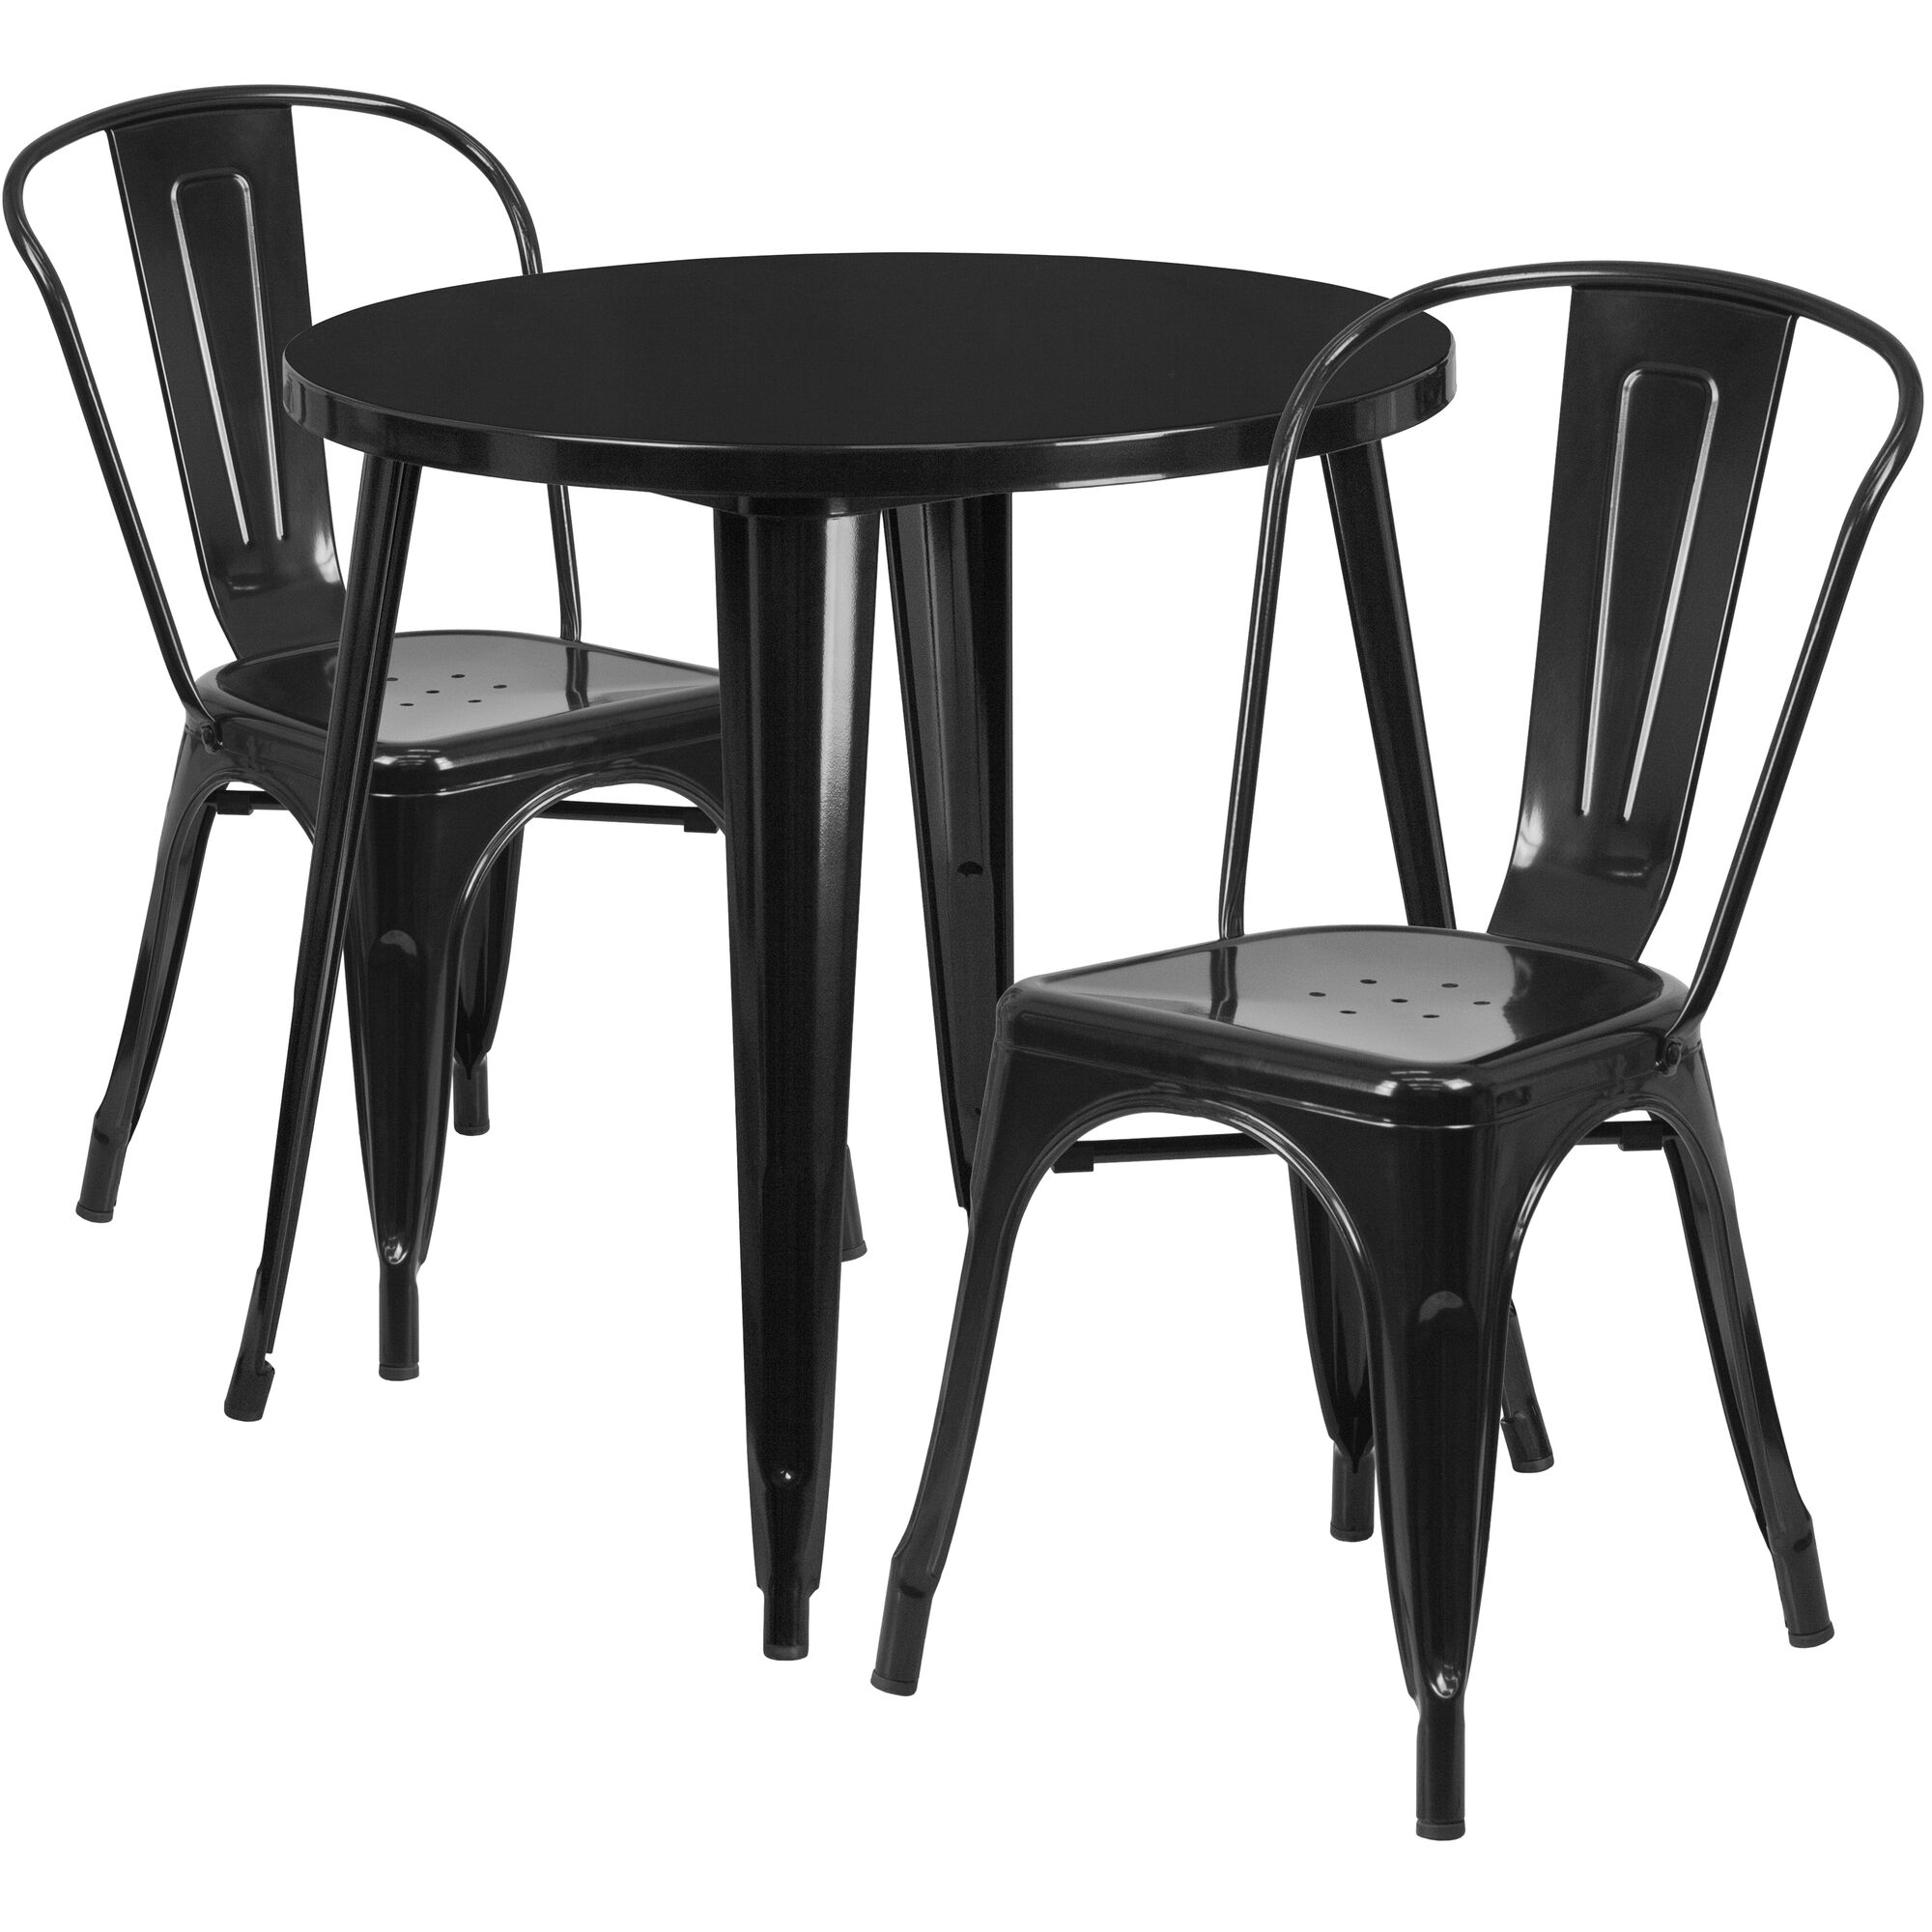 Commercial Grade 30 Round Black Metal Indoor Outdoor Table Set With 2 Cafe Chairs